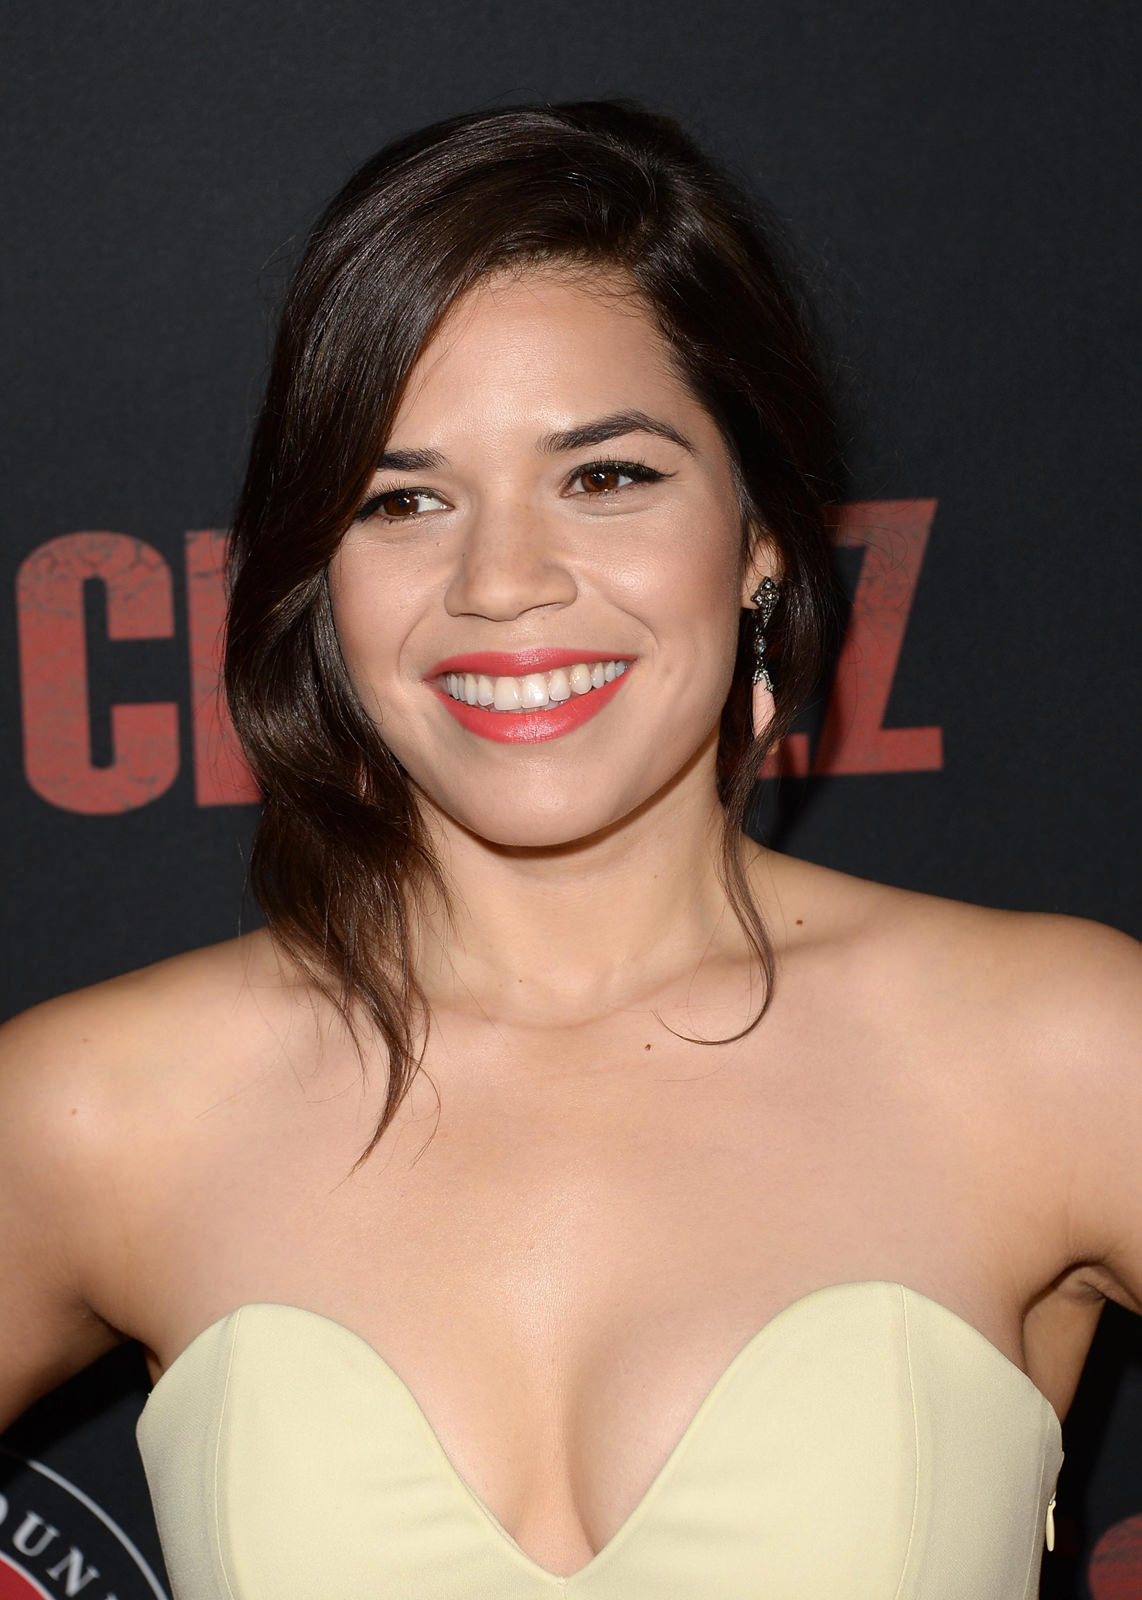 America Ferrera Nude Photos 64